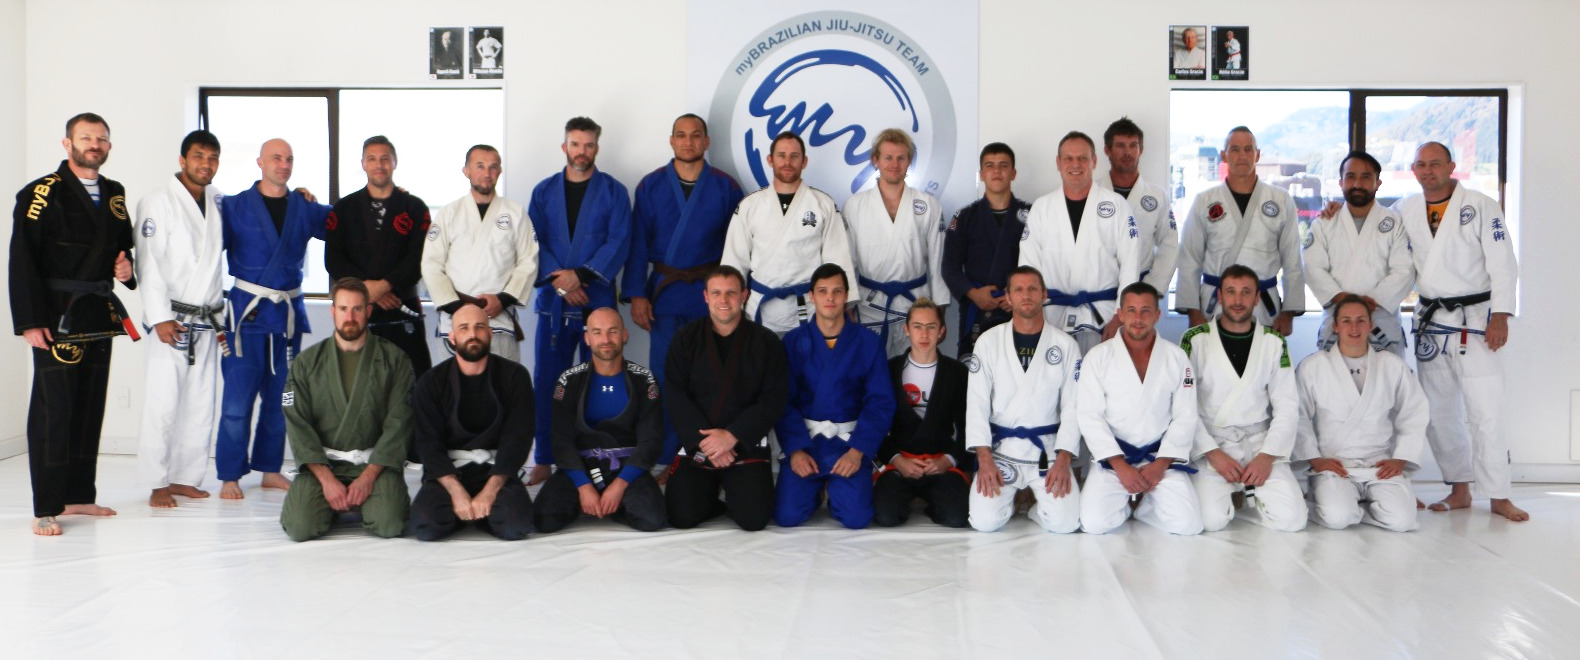 myBJJ New Zealand – Brazilian Jiu-Jitsu in New Zealand